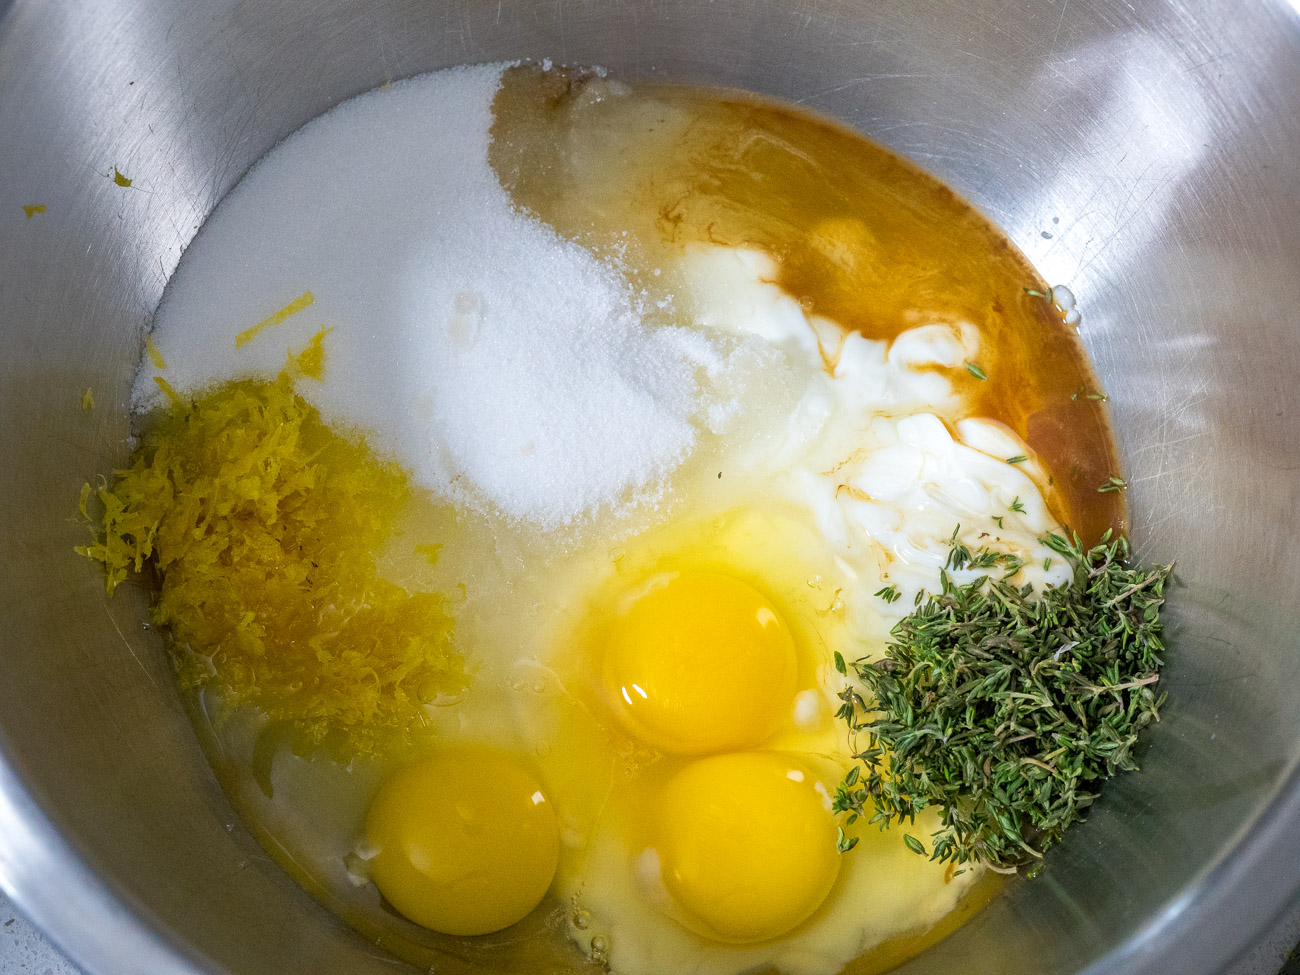 In a separate medium bowl combine yogurt, sugar, eggs, lemon zest, thyme, vanilla, and olive oil and stir. Gently fold in the flour mixture into the wet ingredients until just incorporated.